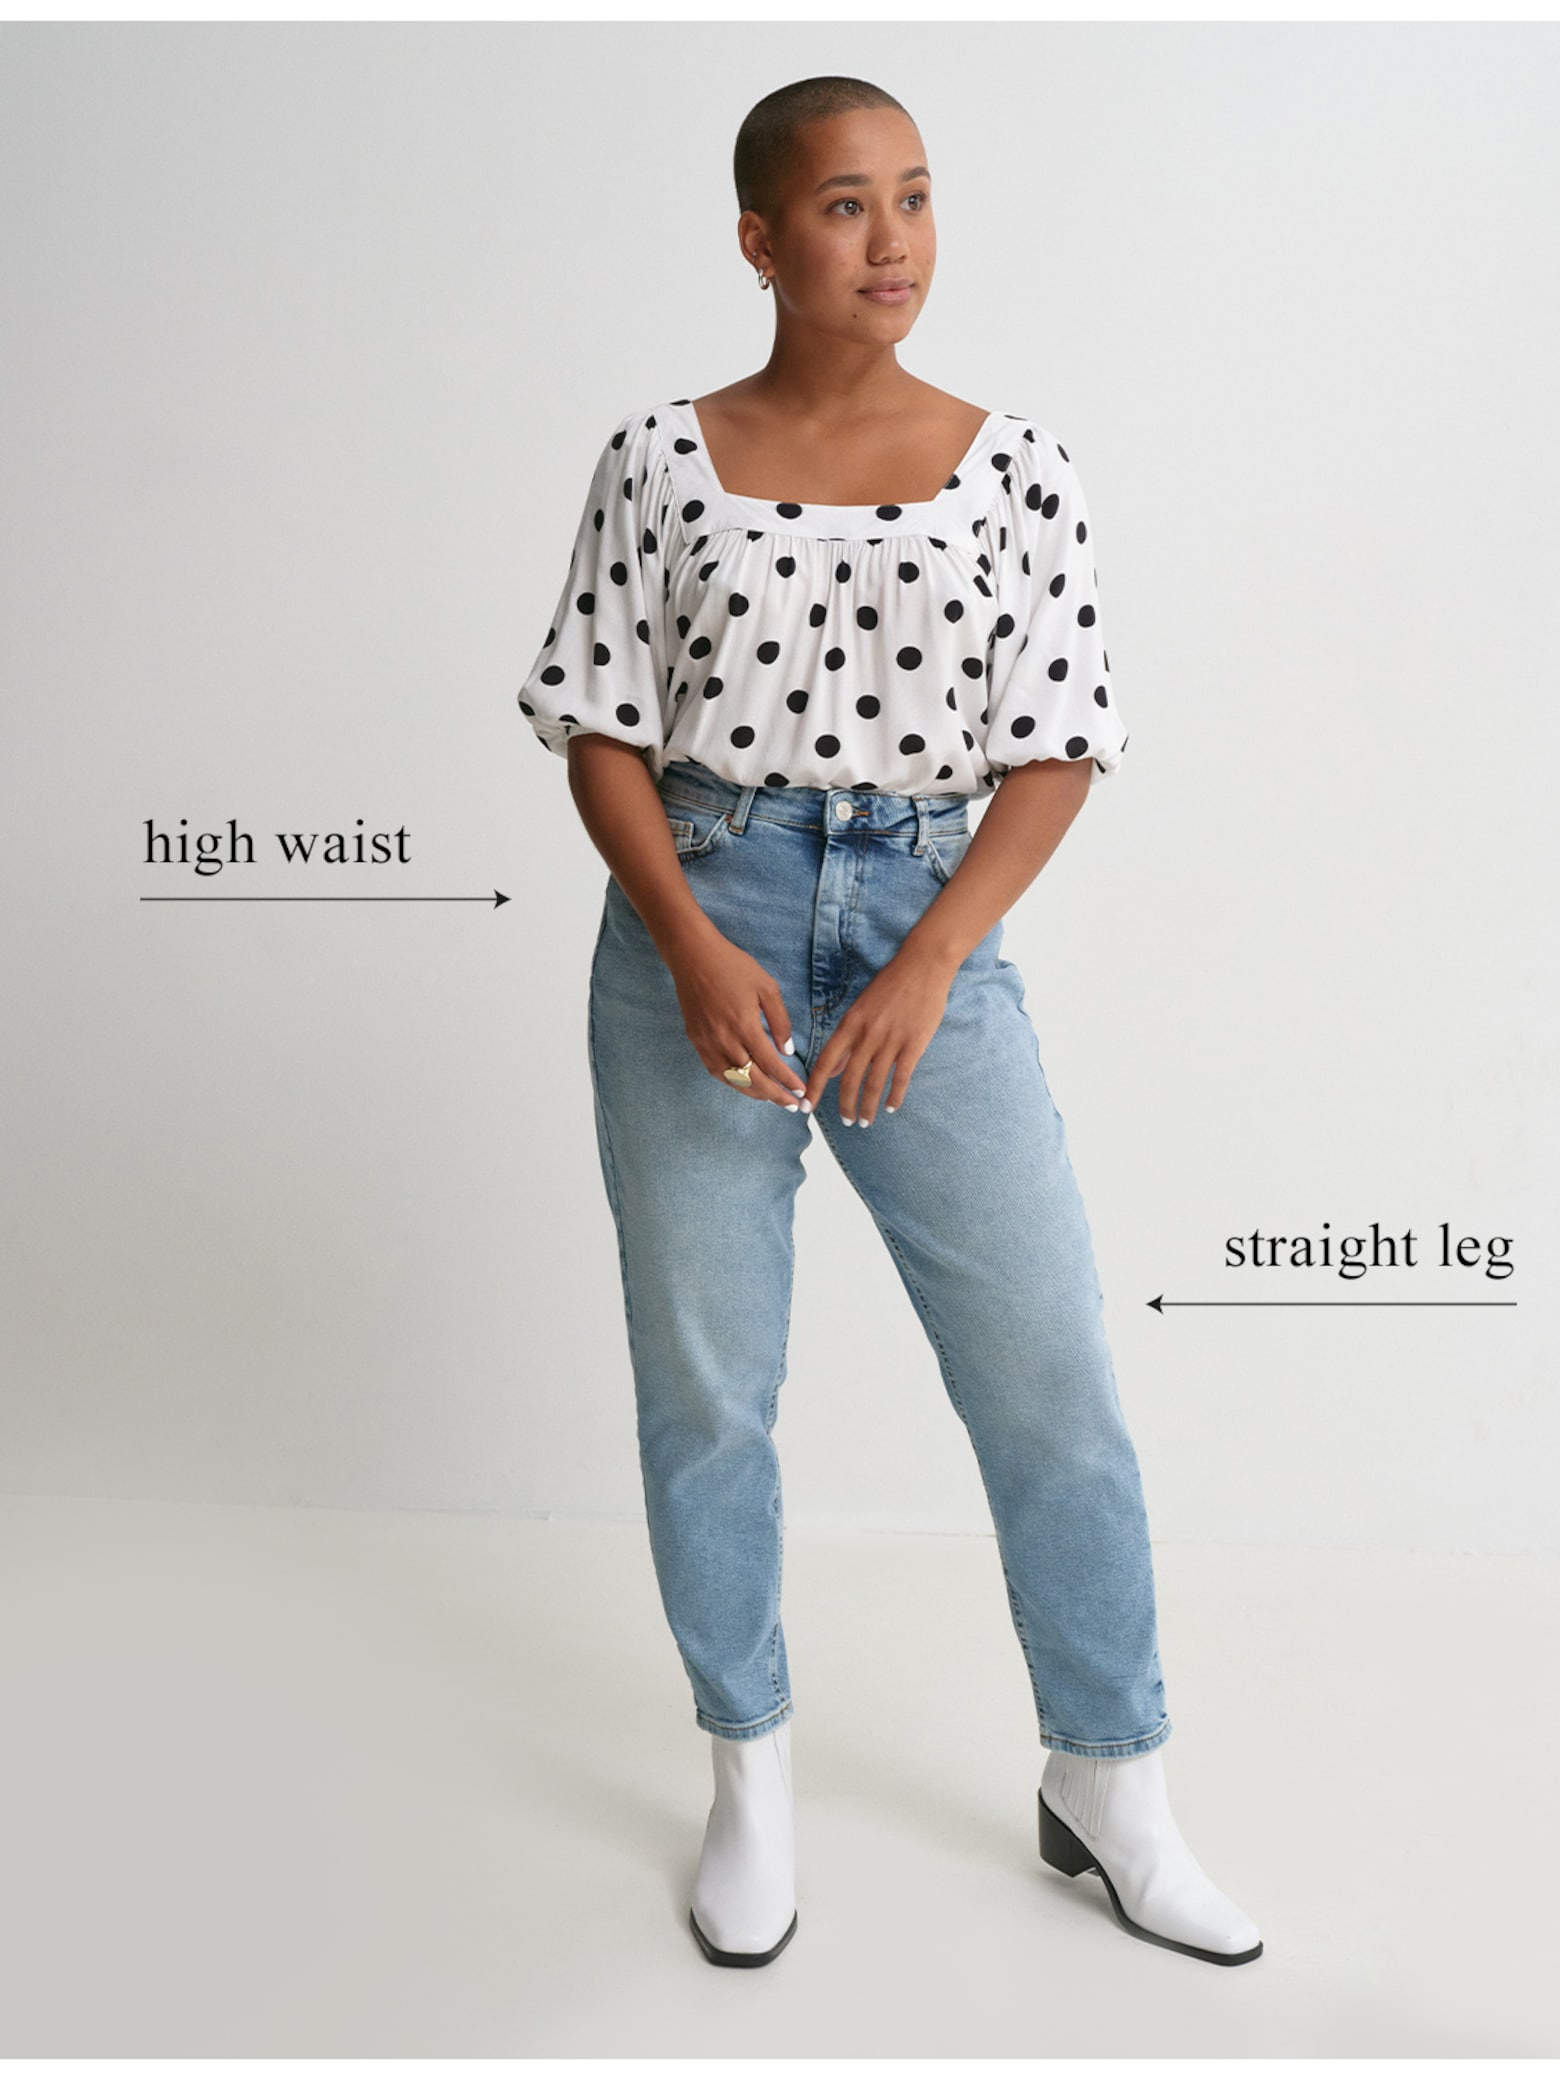 Bodytype: Petite & Curved Top 3 Jeans-Fits